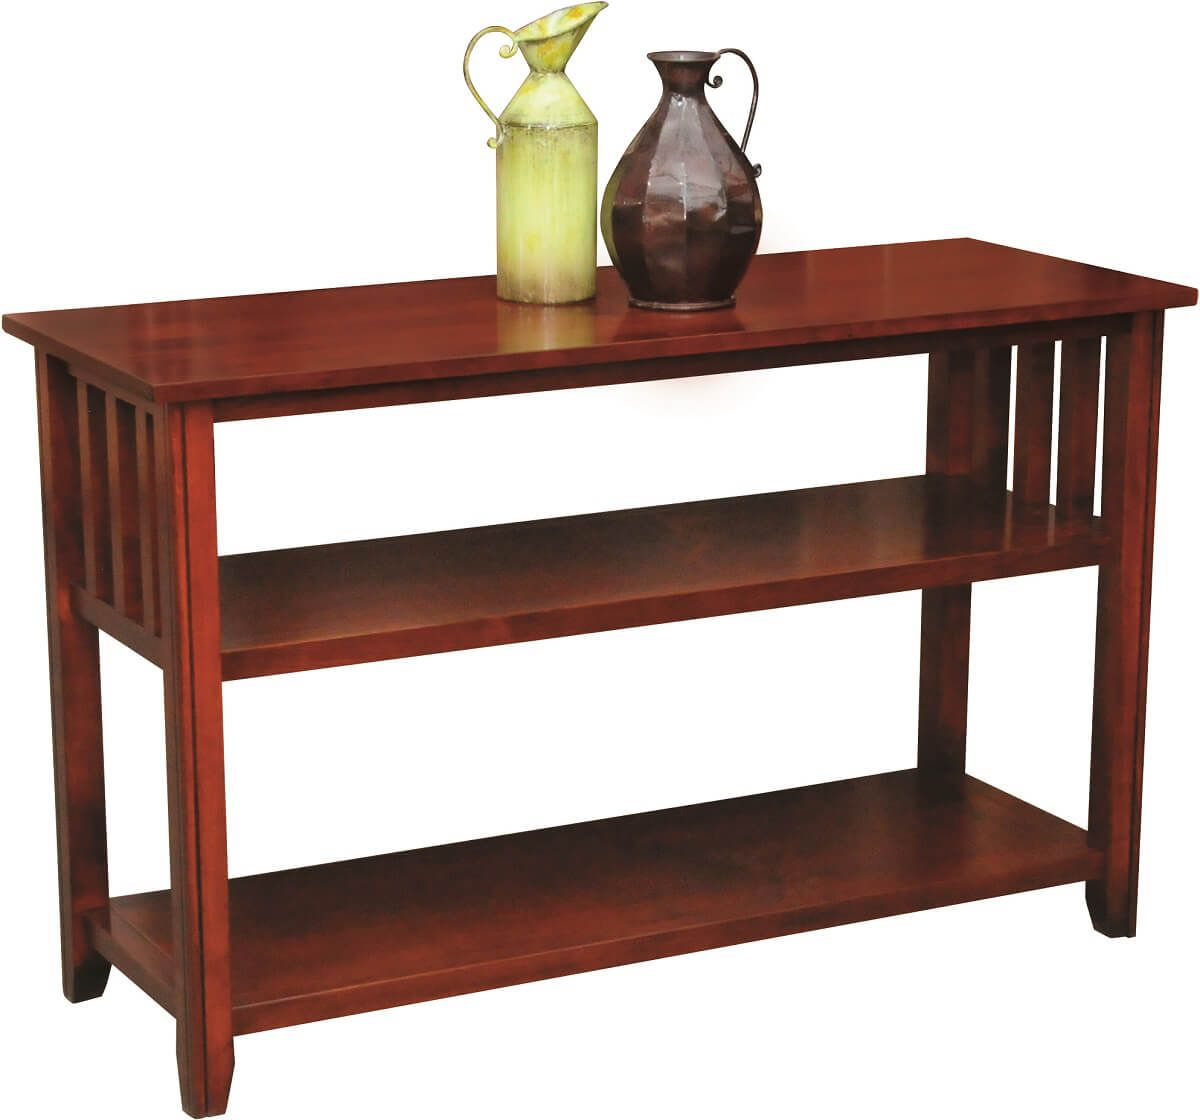 Aldora Console Table in Brown Maple